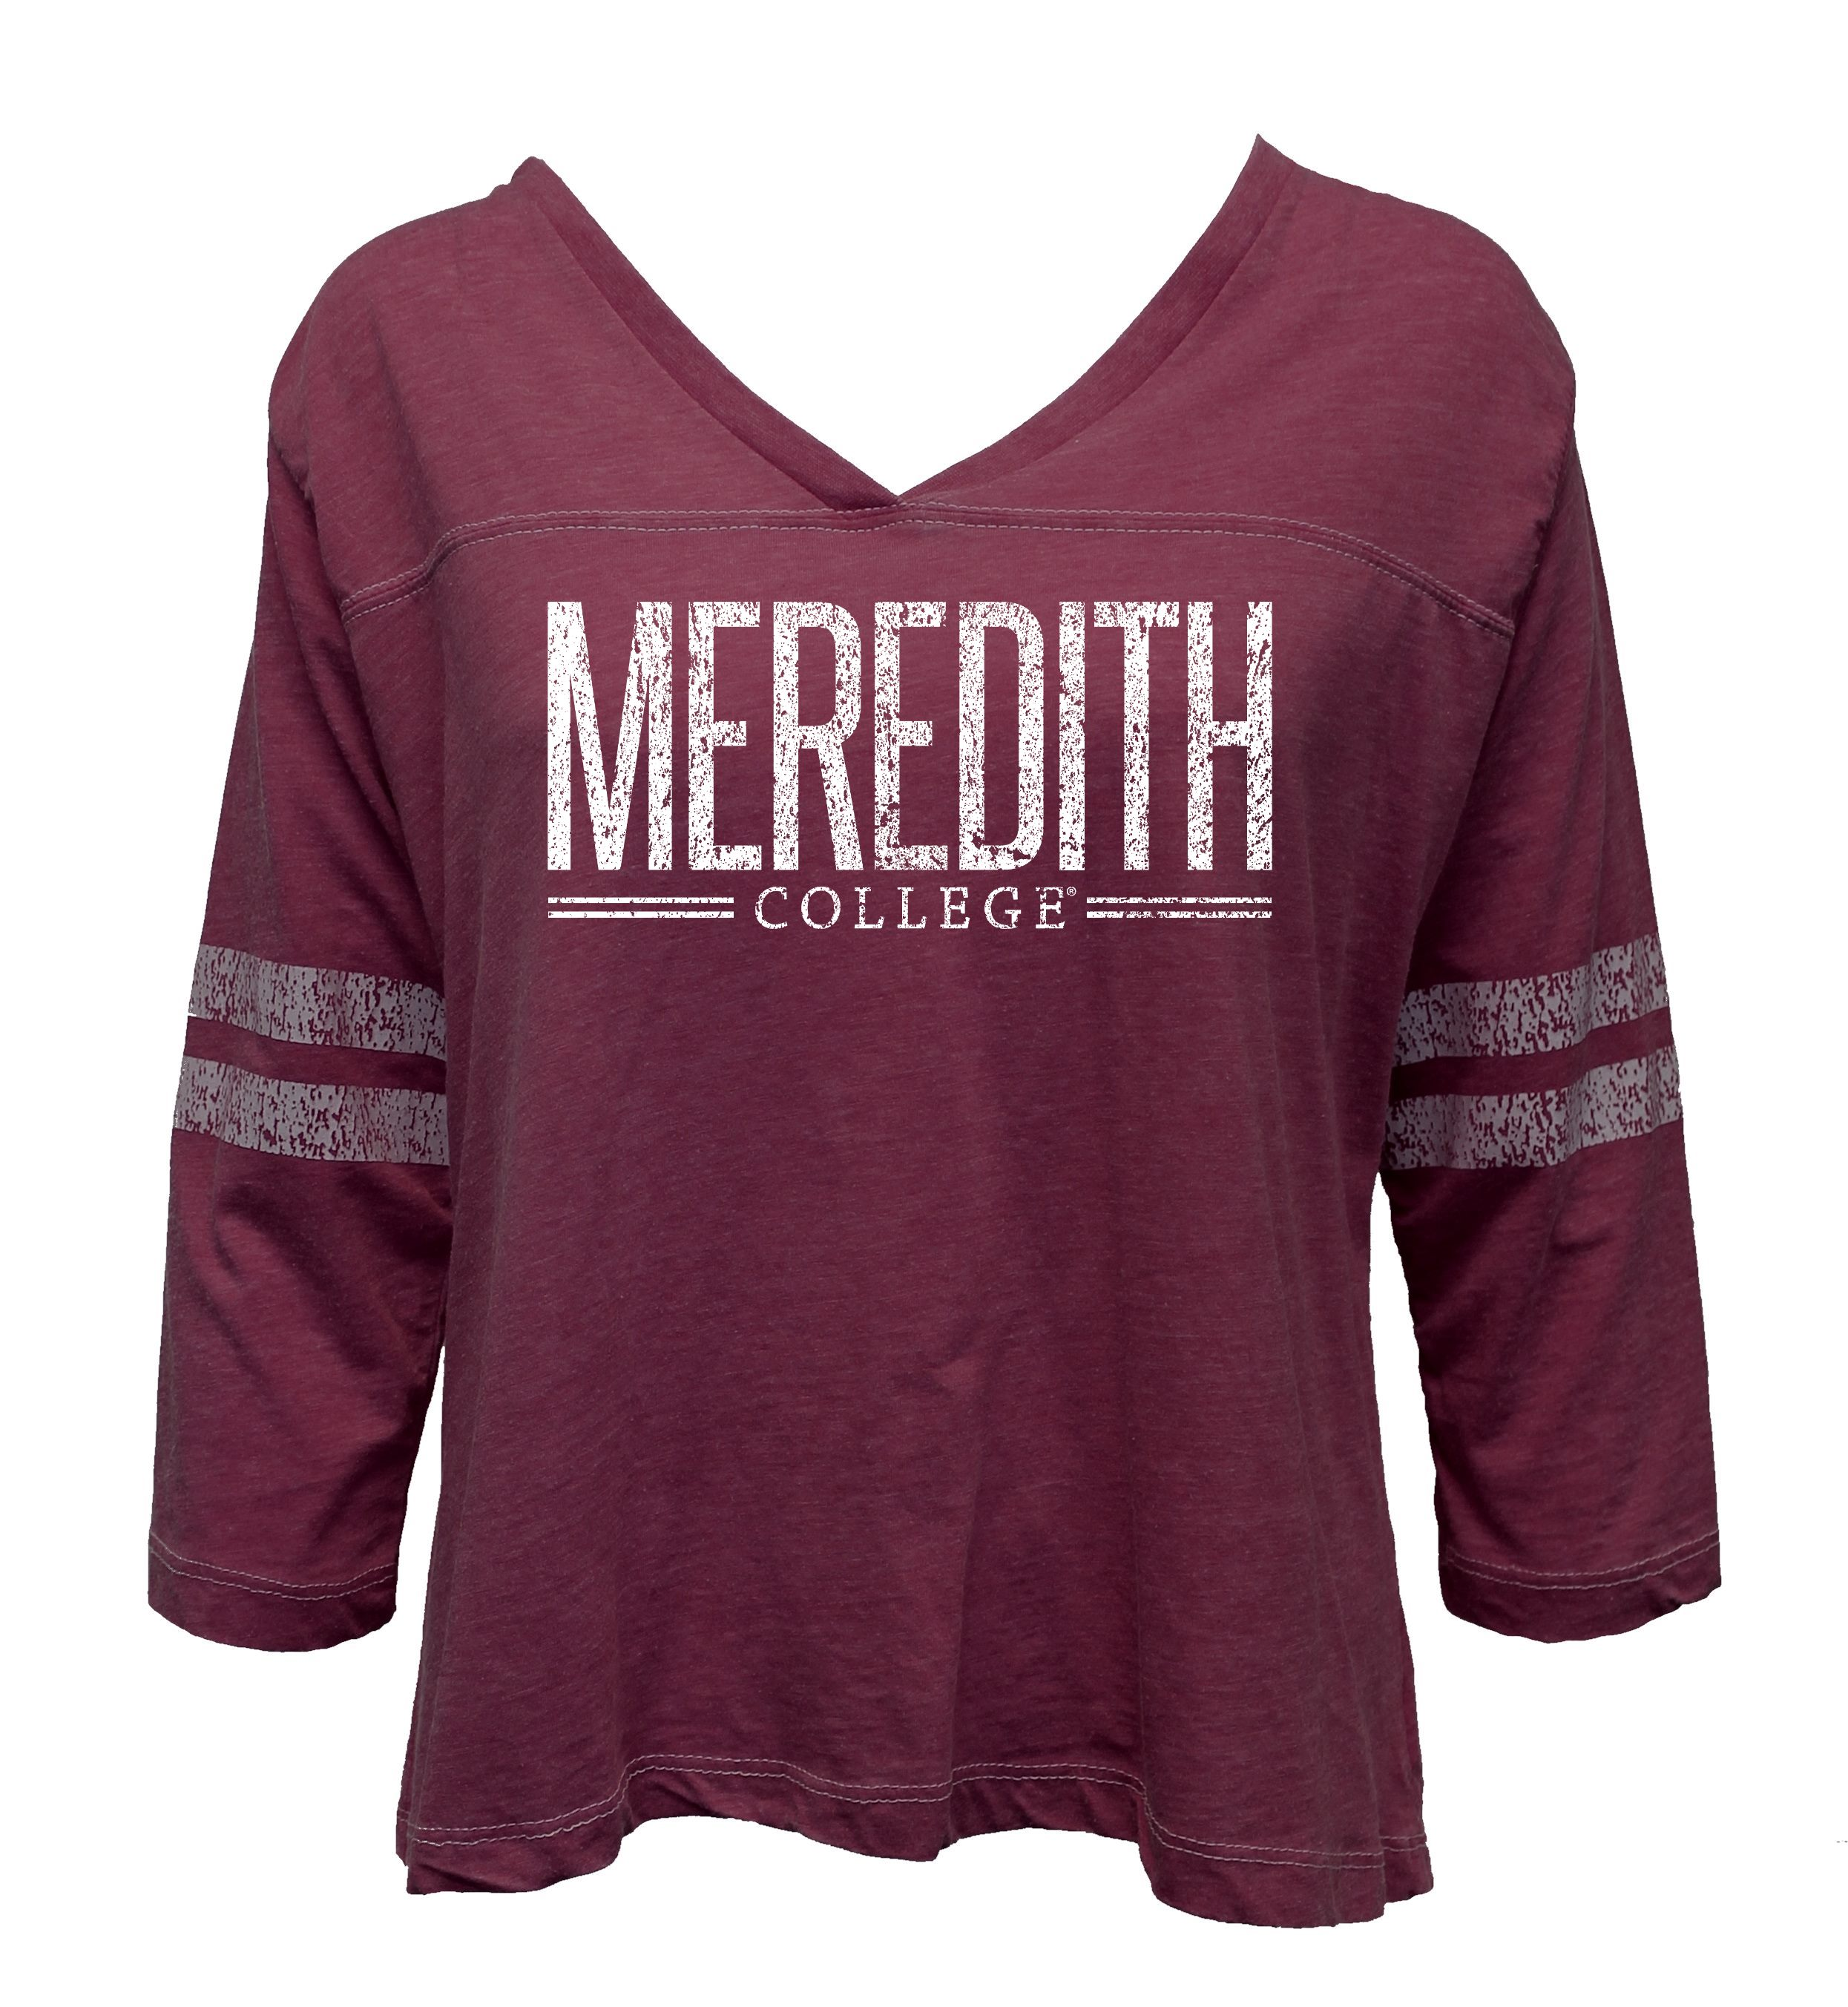 Image for the Relaxed Junior's 3/4 Sleeve Football Tee Maroon Summit Sportswear product